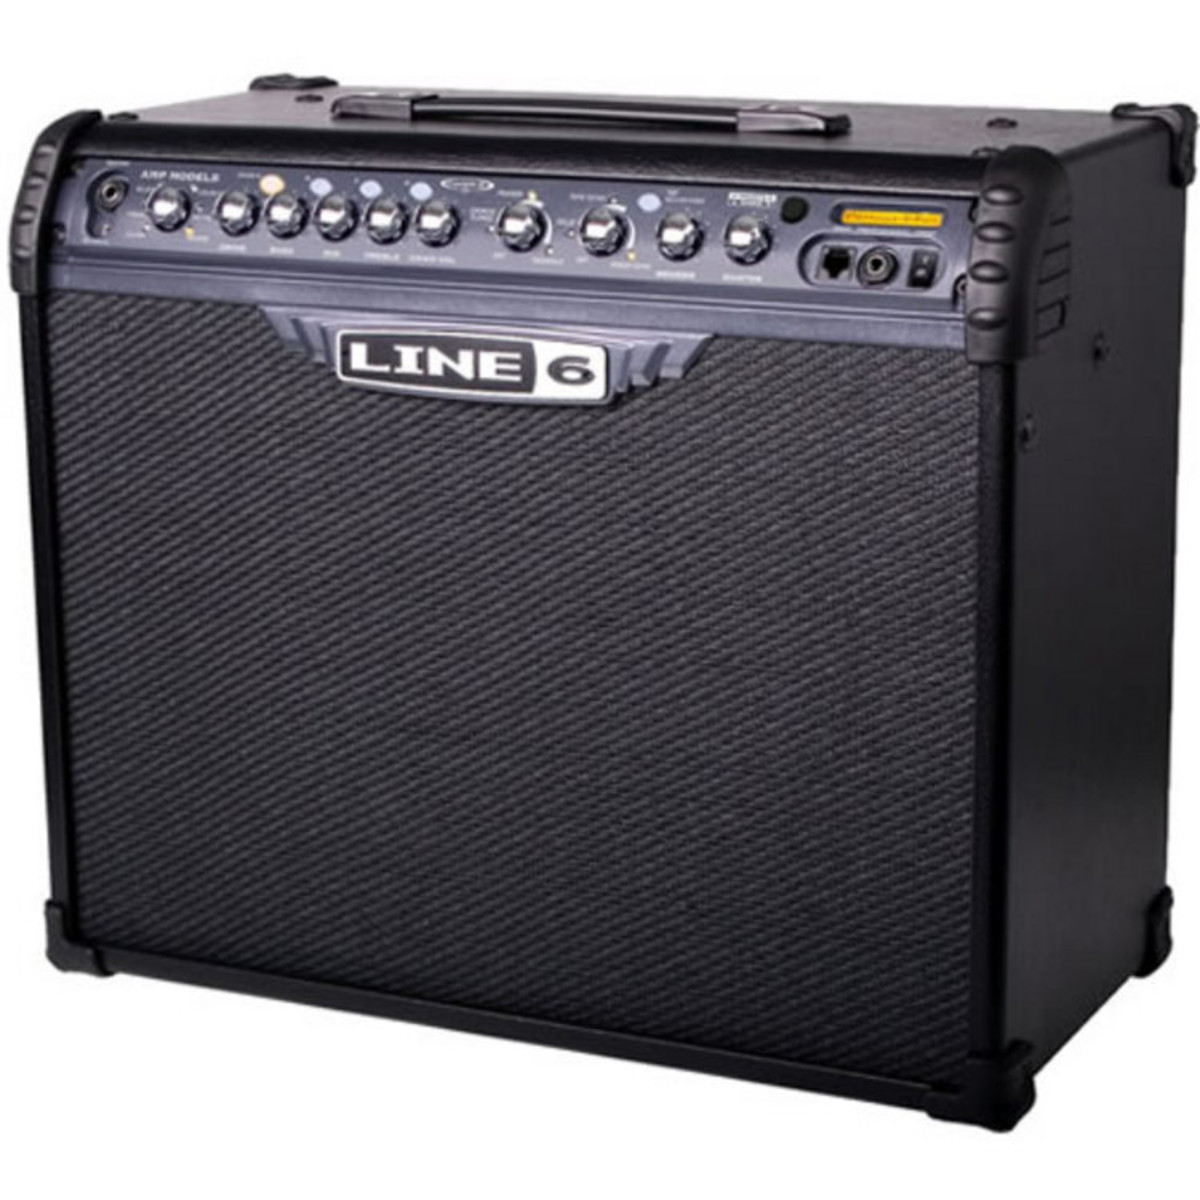 disc line 6 spider iv 75 guitar combo amp used at gear4music